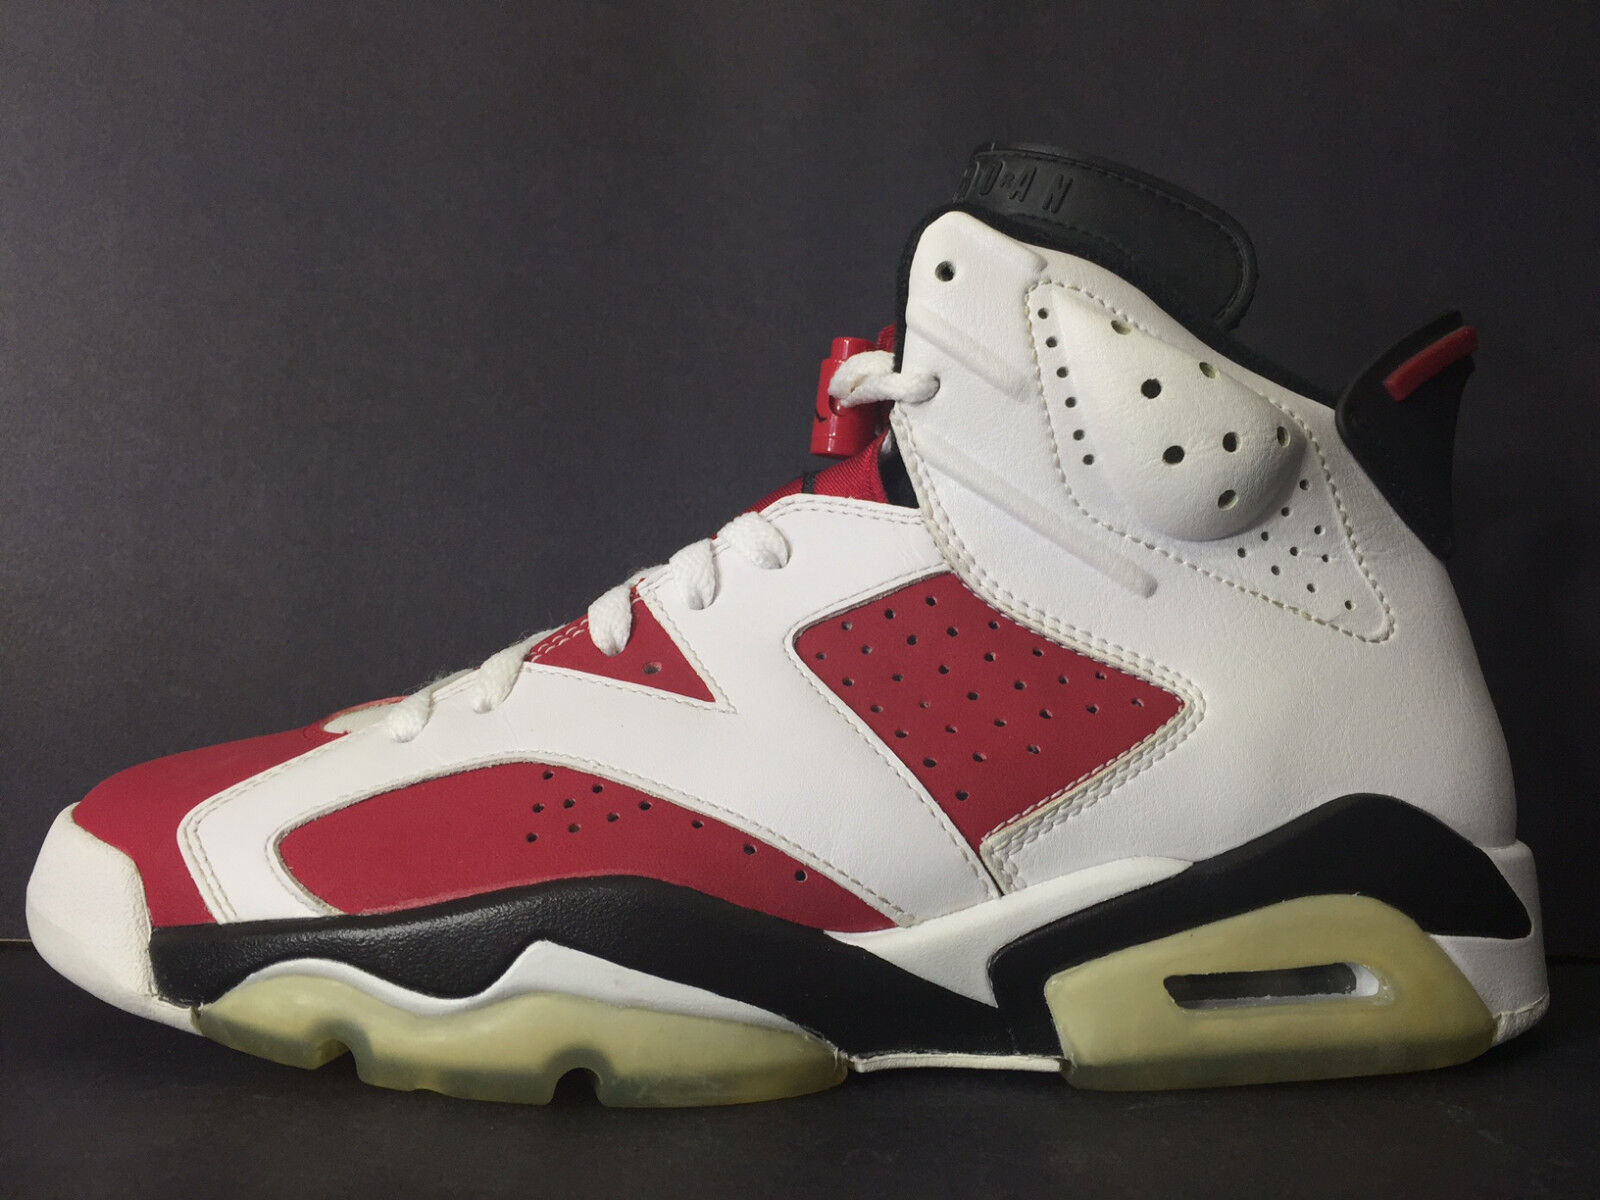 3a73714446861c ... 2008 2008 2008 DS NEW NIKE AIR JORDAN VI 6 RETRO CDP CARMINE MEN 7.5  WOMEN ...